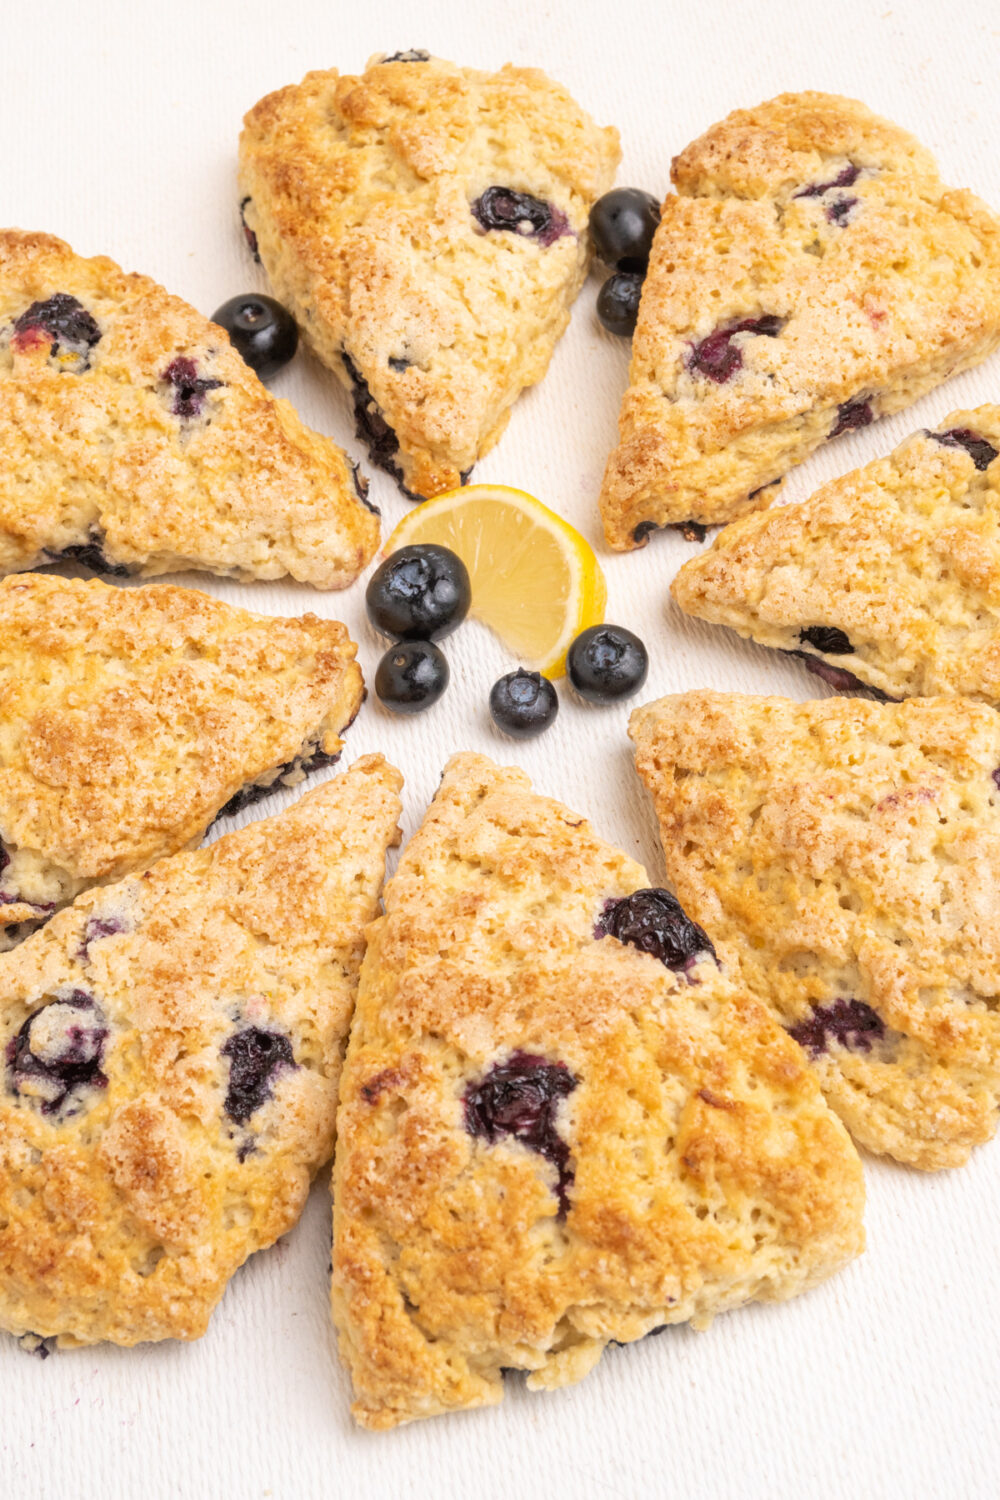 Wedge shaped blueberry scones arranged in a circle.